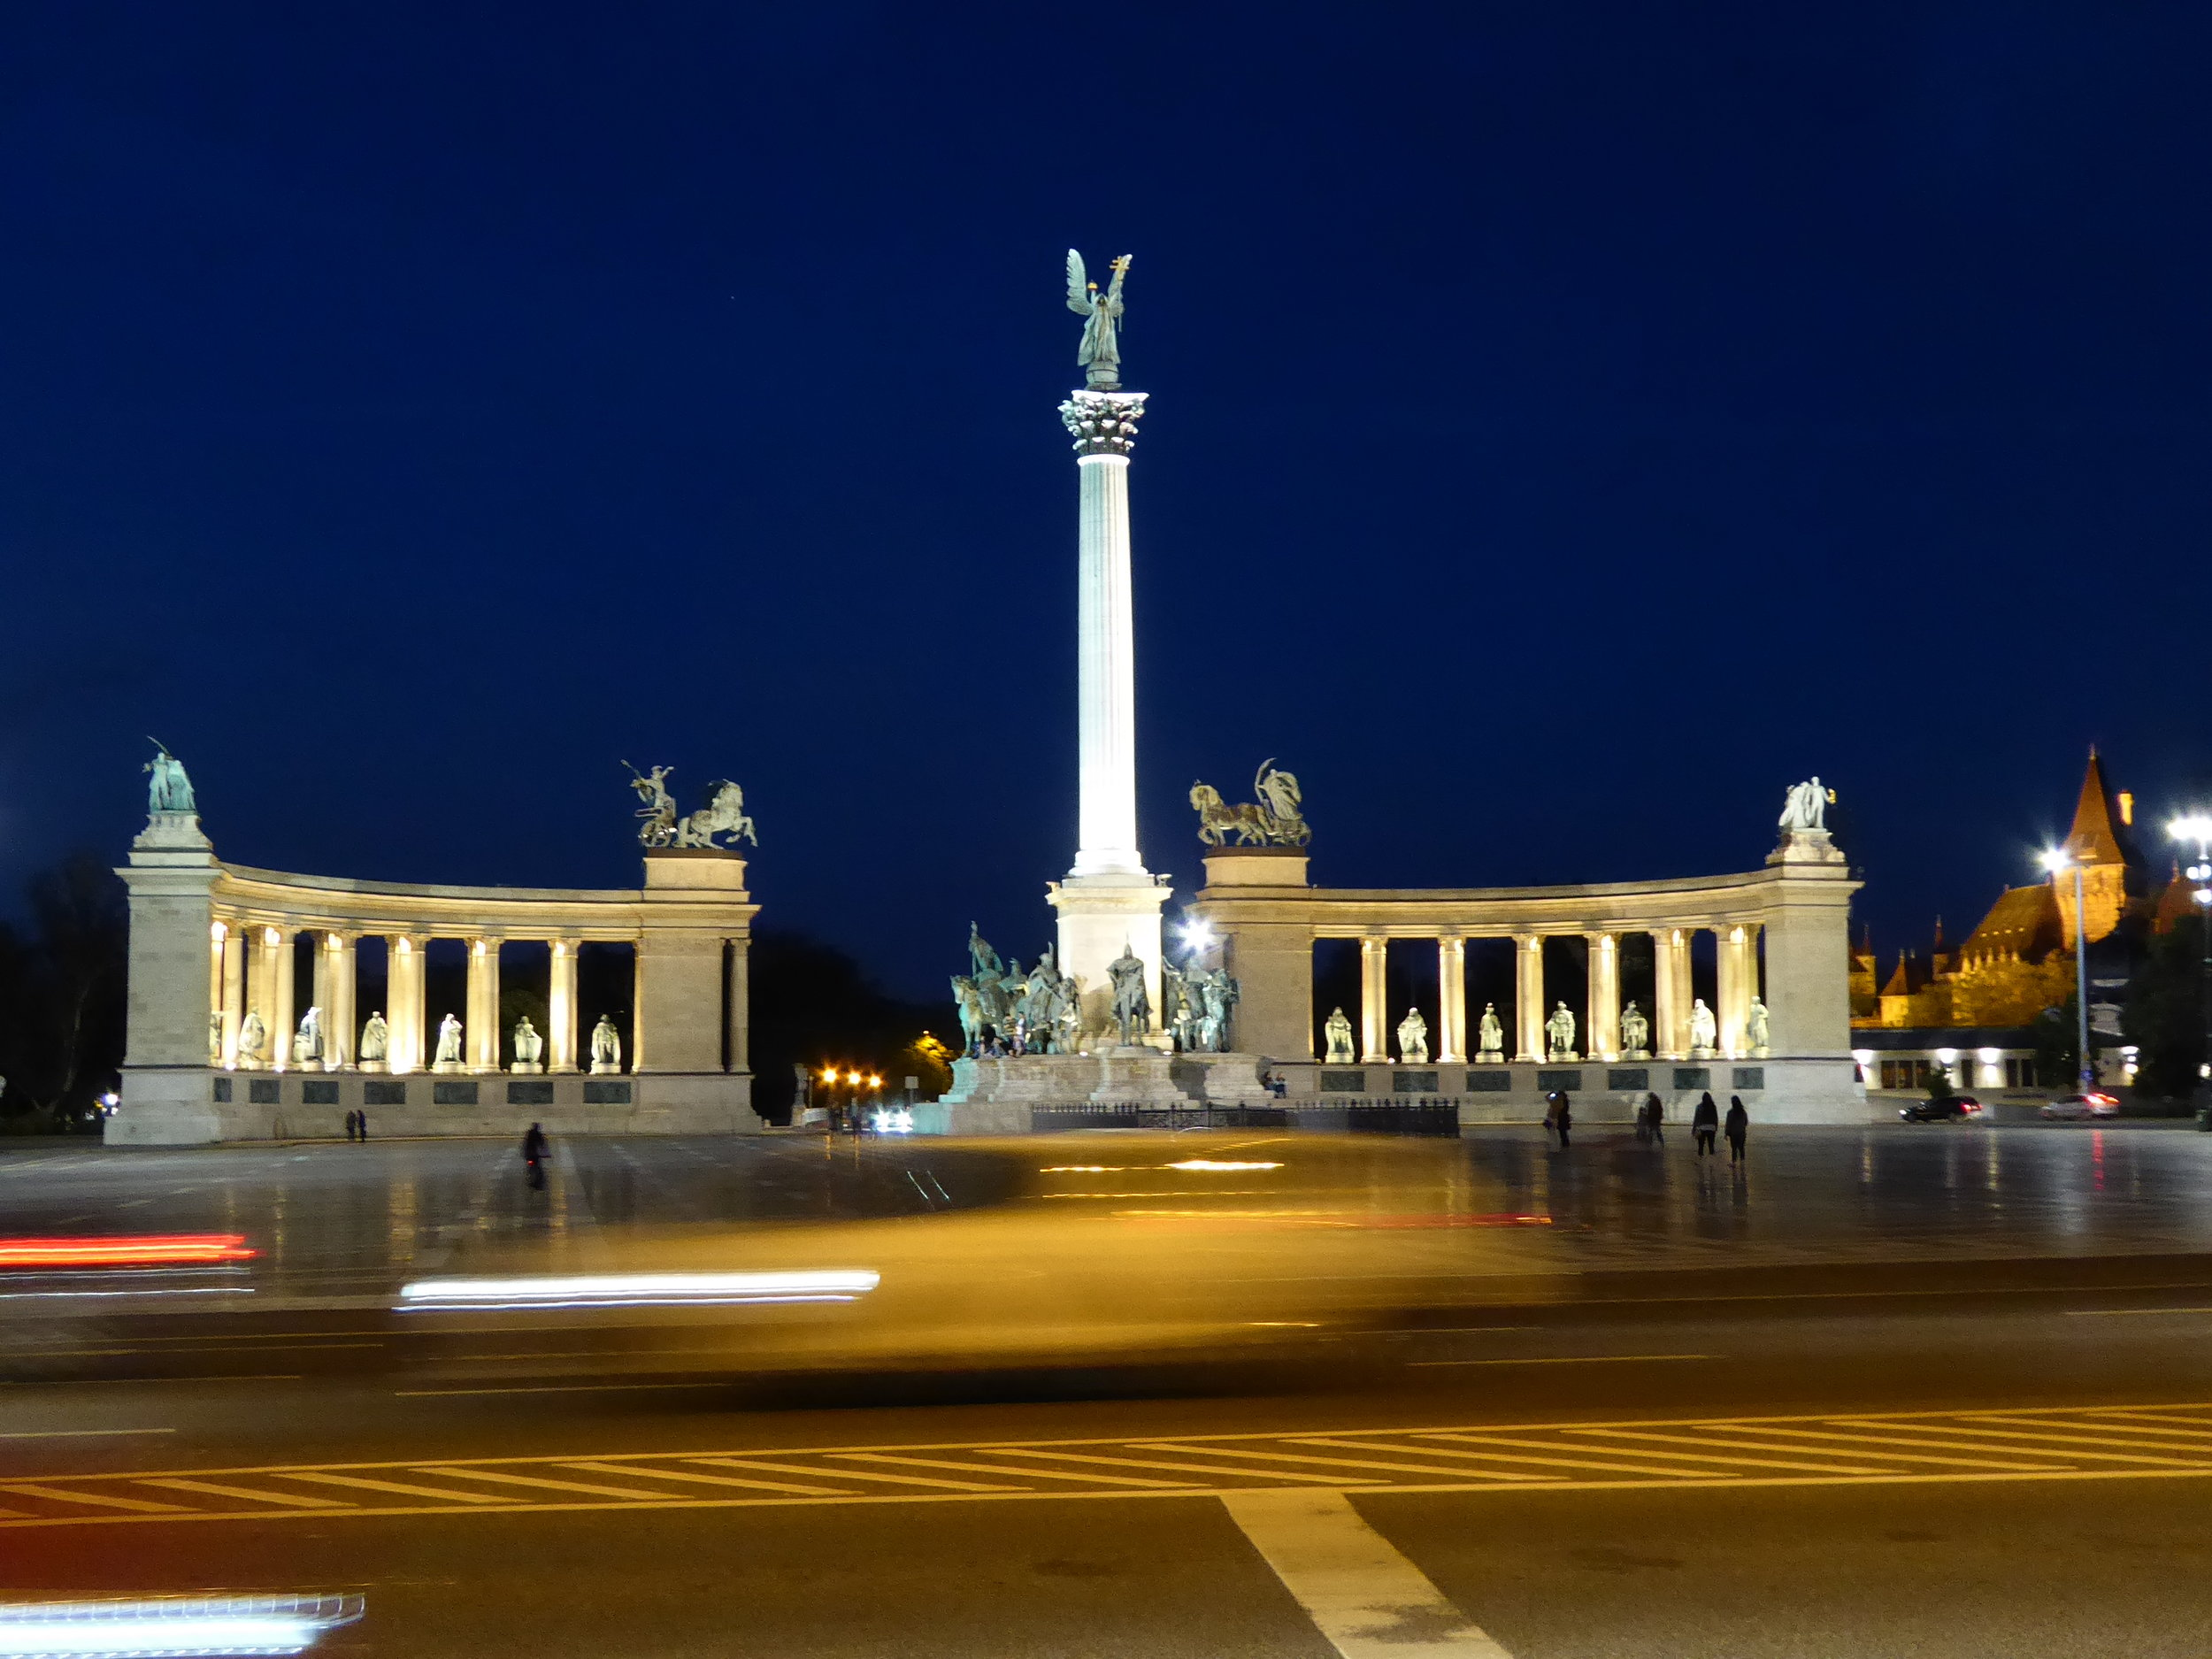 Heros Square at night.